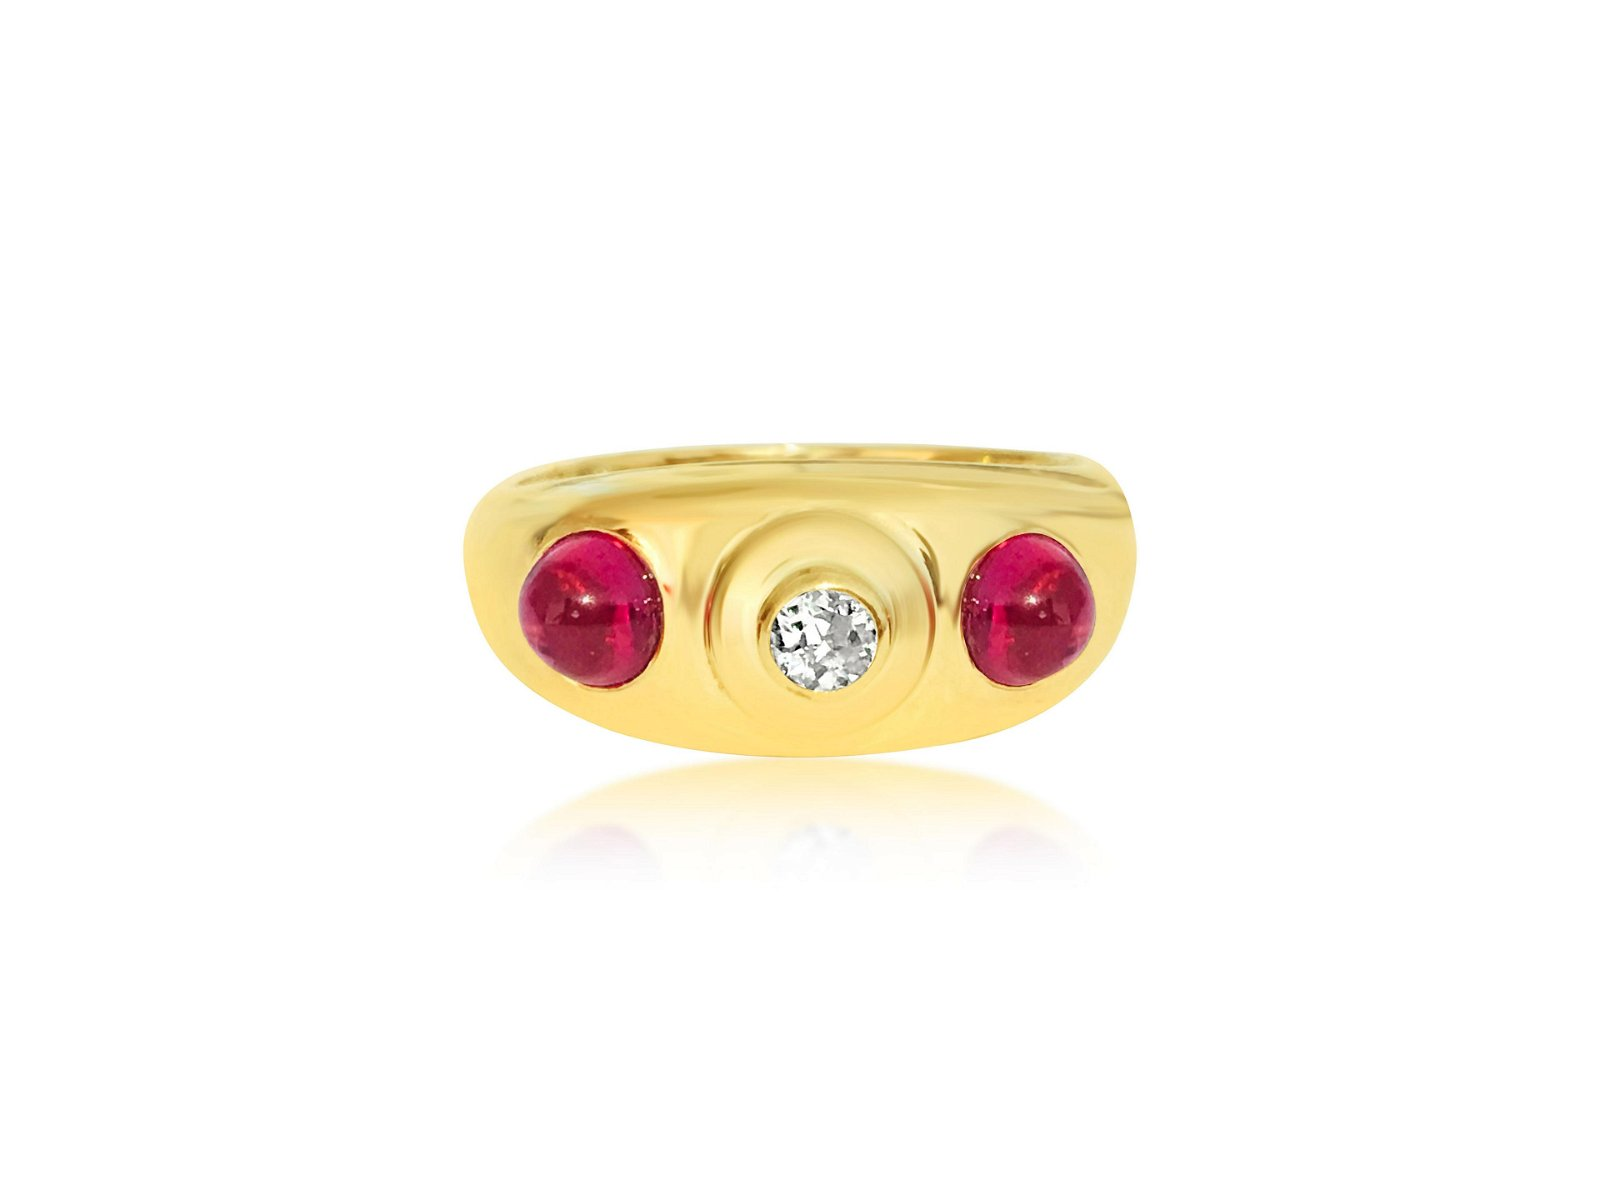 Sophisticated Vintage, 14k Gold, Ruby & Diamond Ring